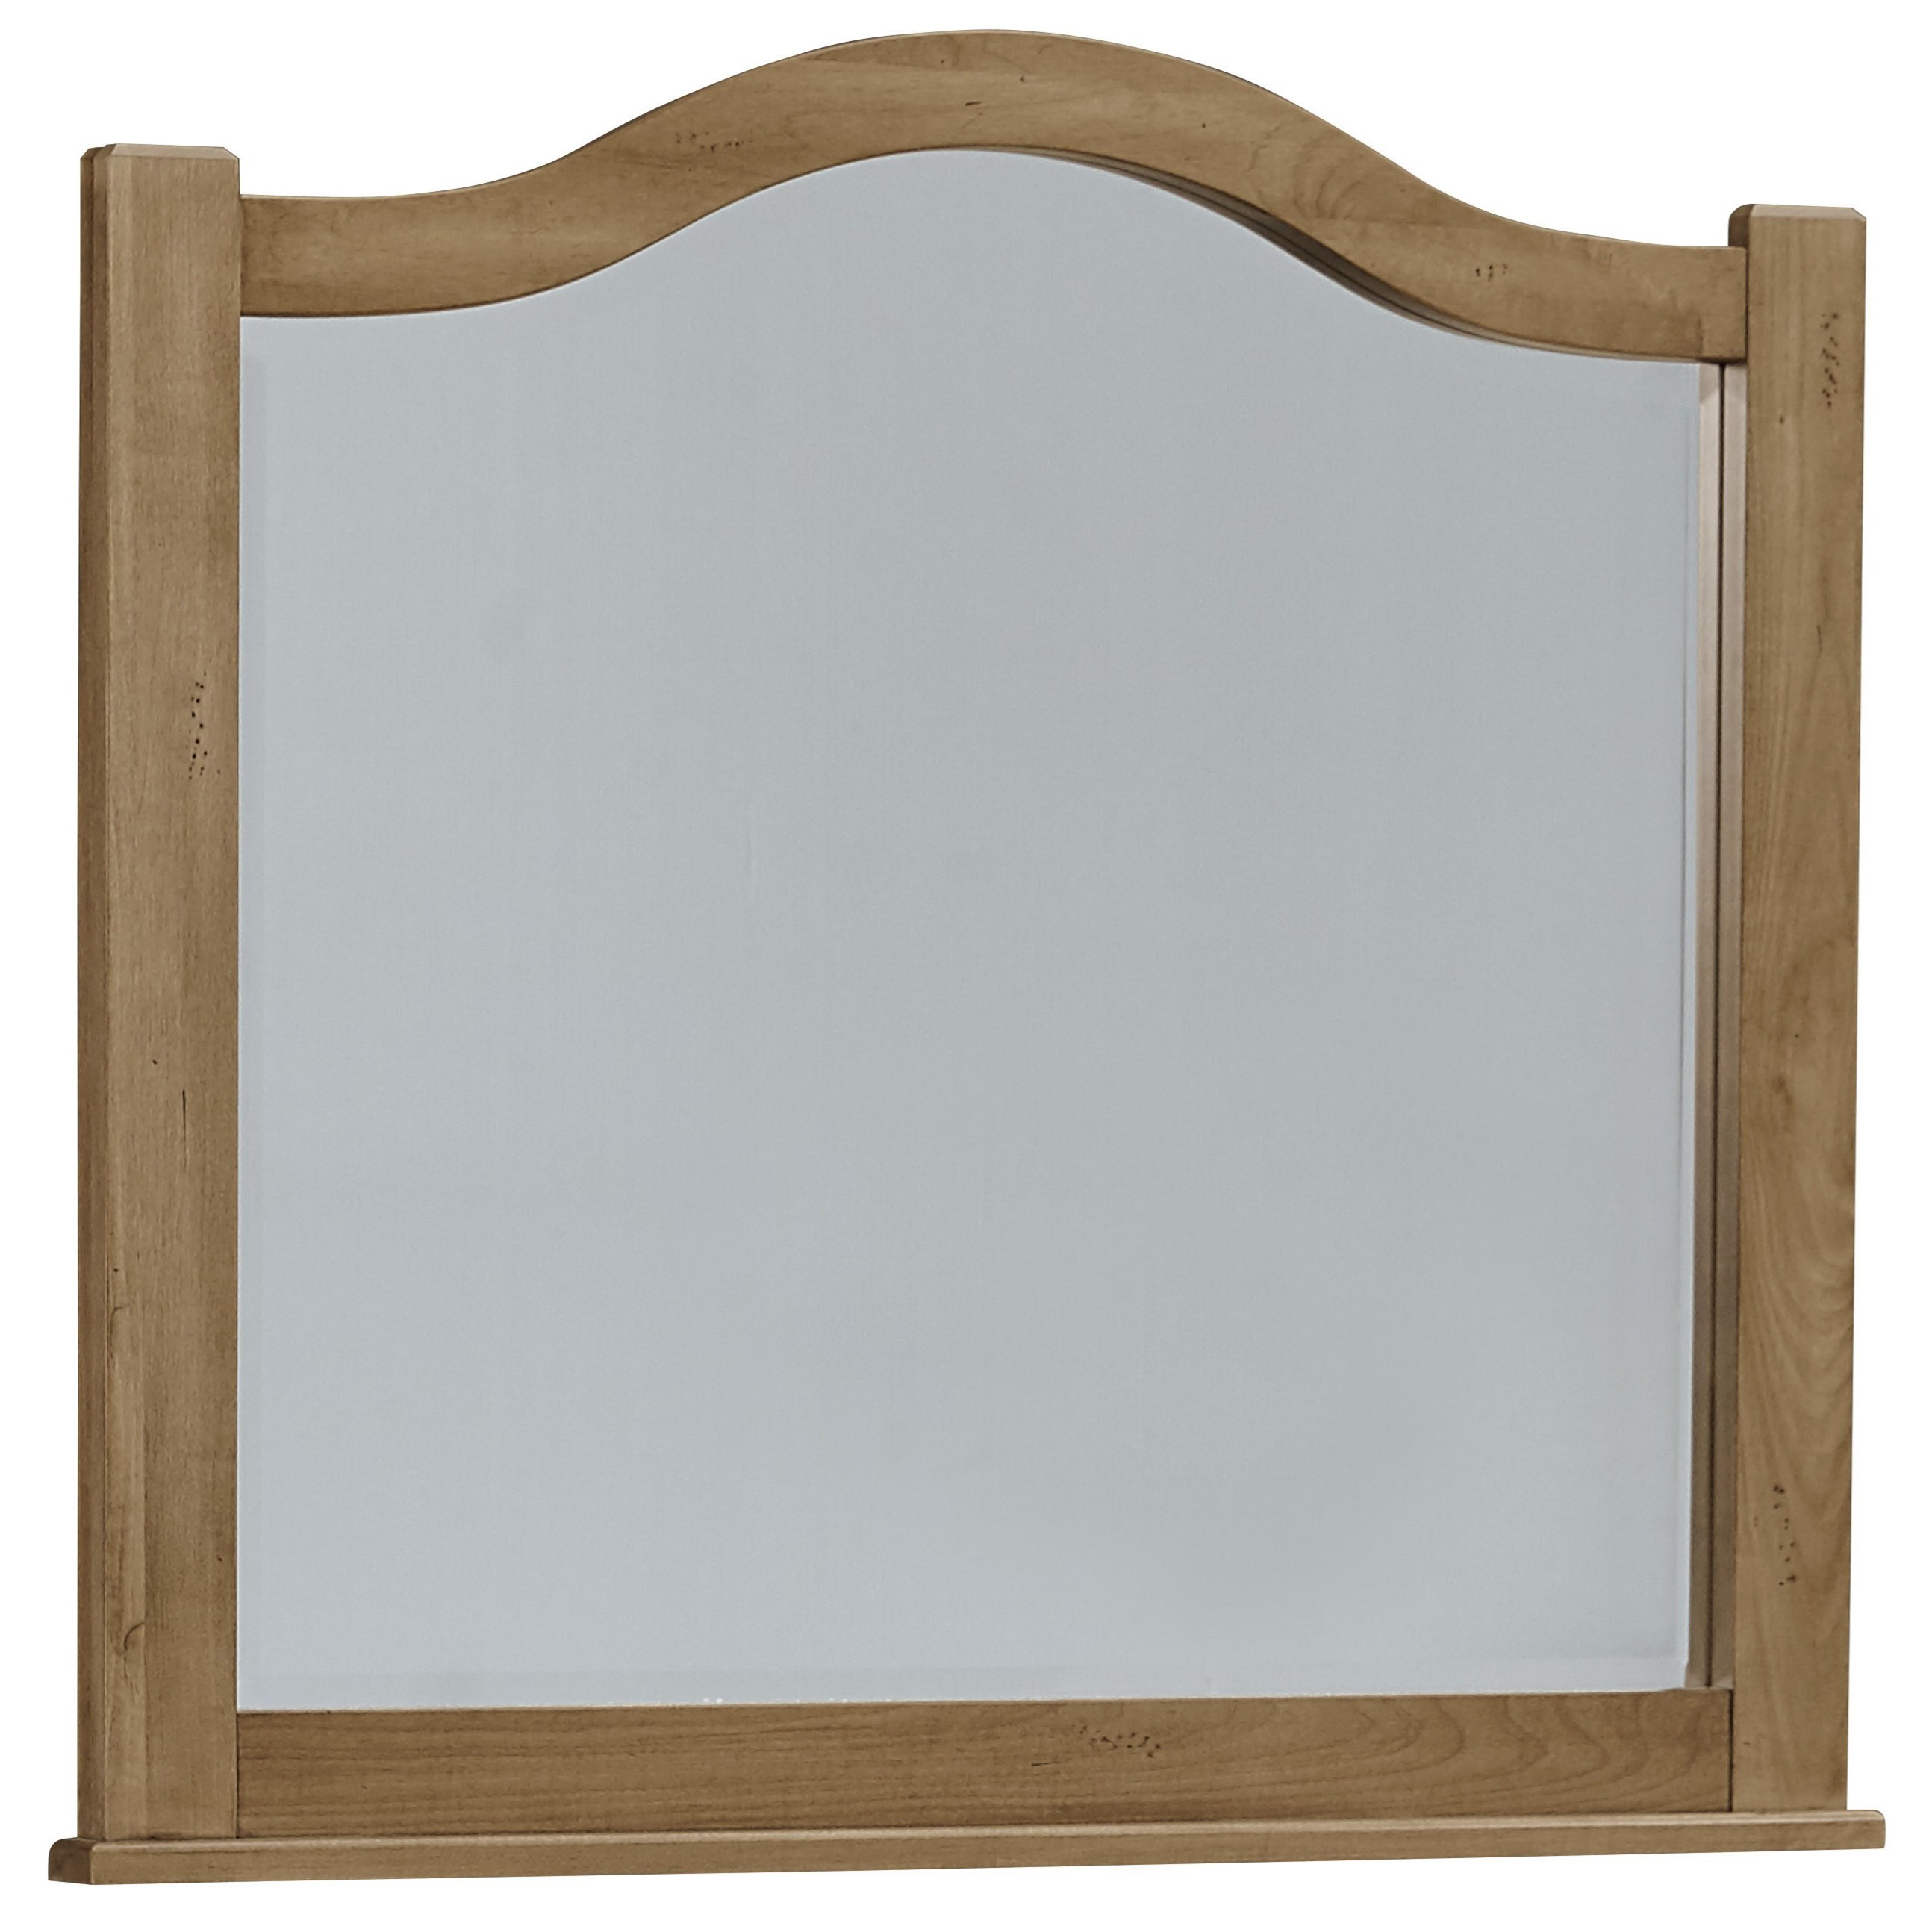 Vaughan Bassett American Maple Arched Mirror - Beveled Glass - Item Number: 402-447